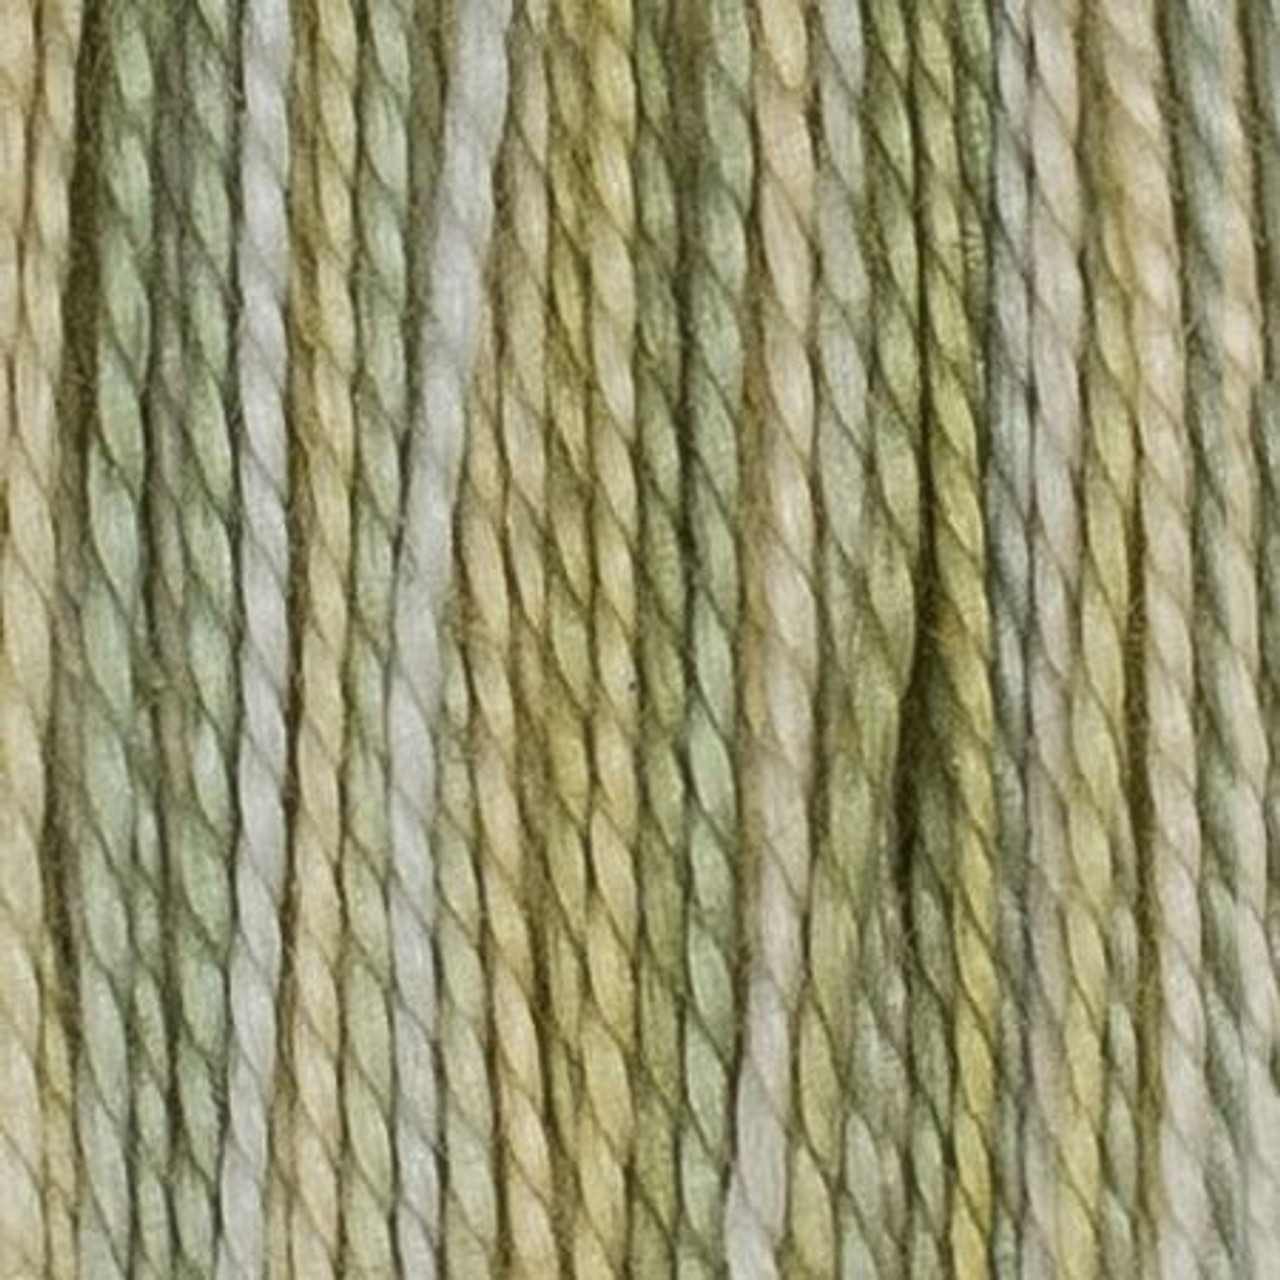 House of Embroidery : Cape Town Coastal Drive Collection, 8wt Perle Cotton - Lemon and Lime (25C)